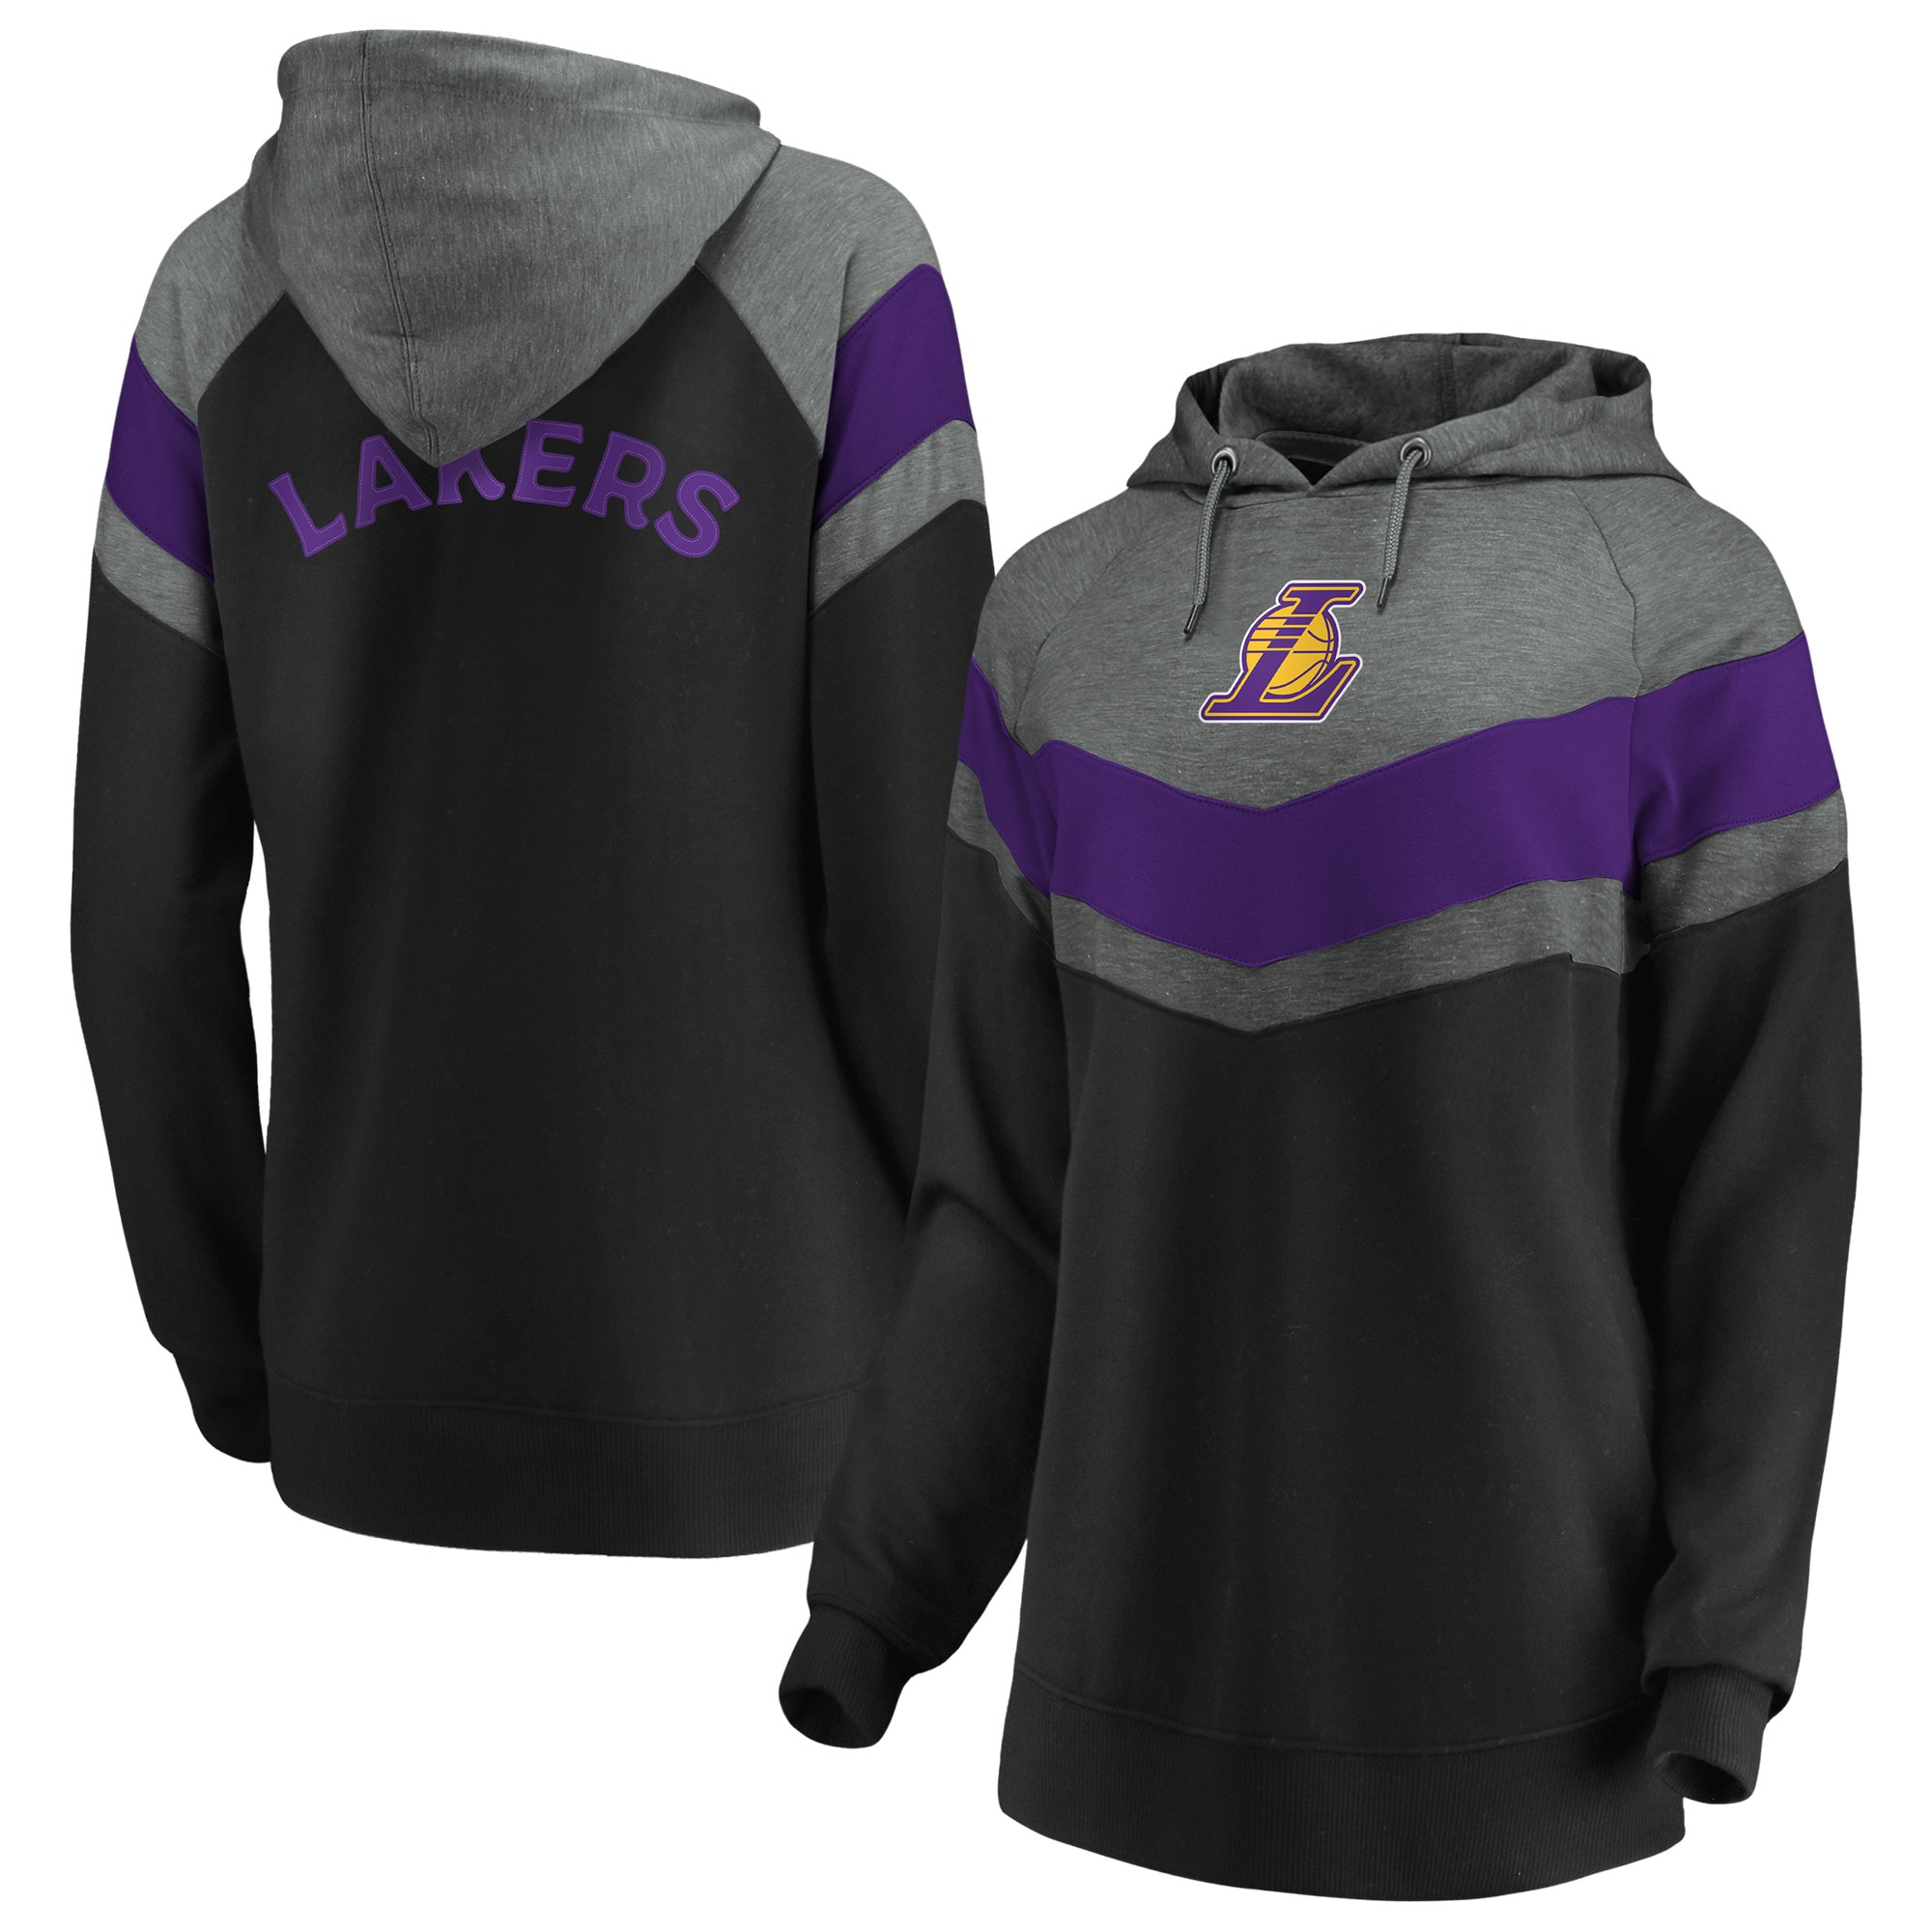 Los Angeles Lakers Fanatics Branded Women's True Classics Go All Out Chevron Pullover Hoodie - Gray/Black